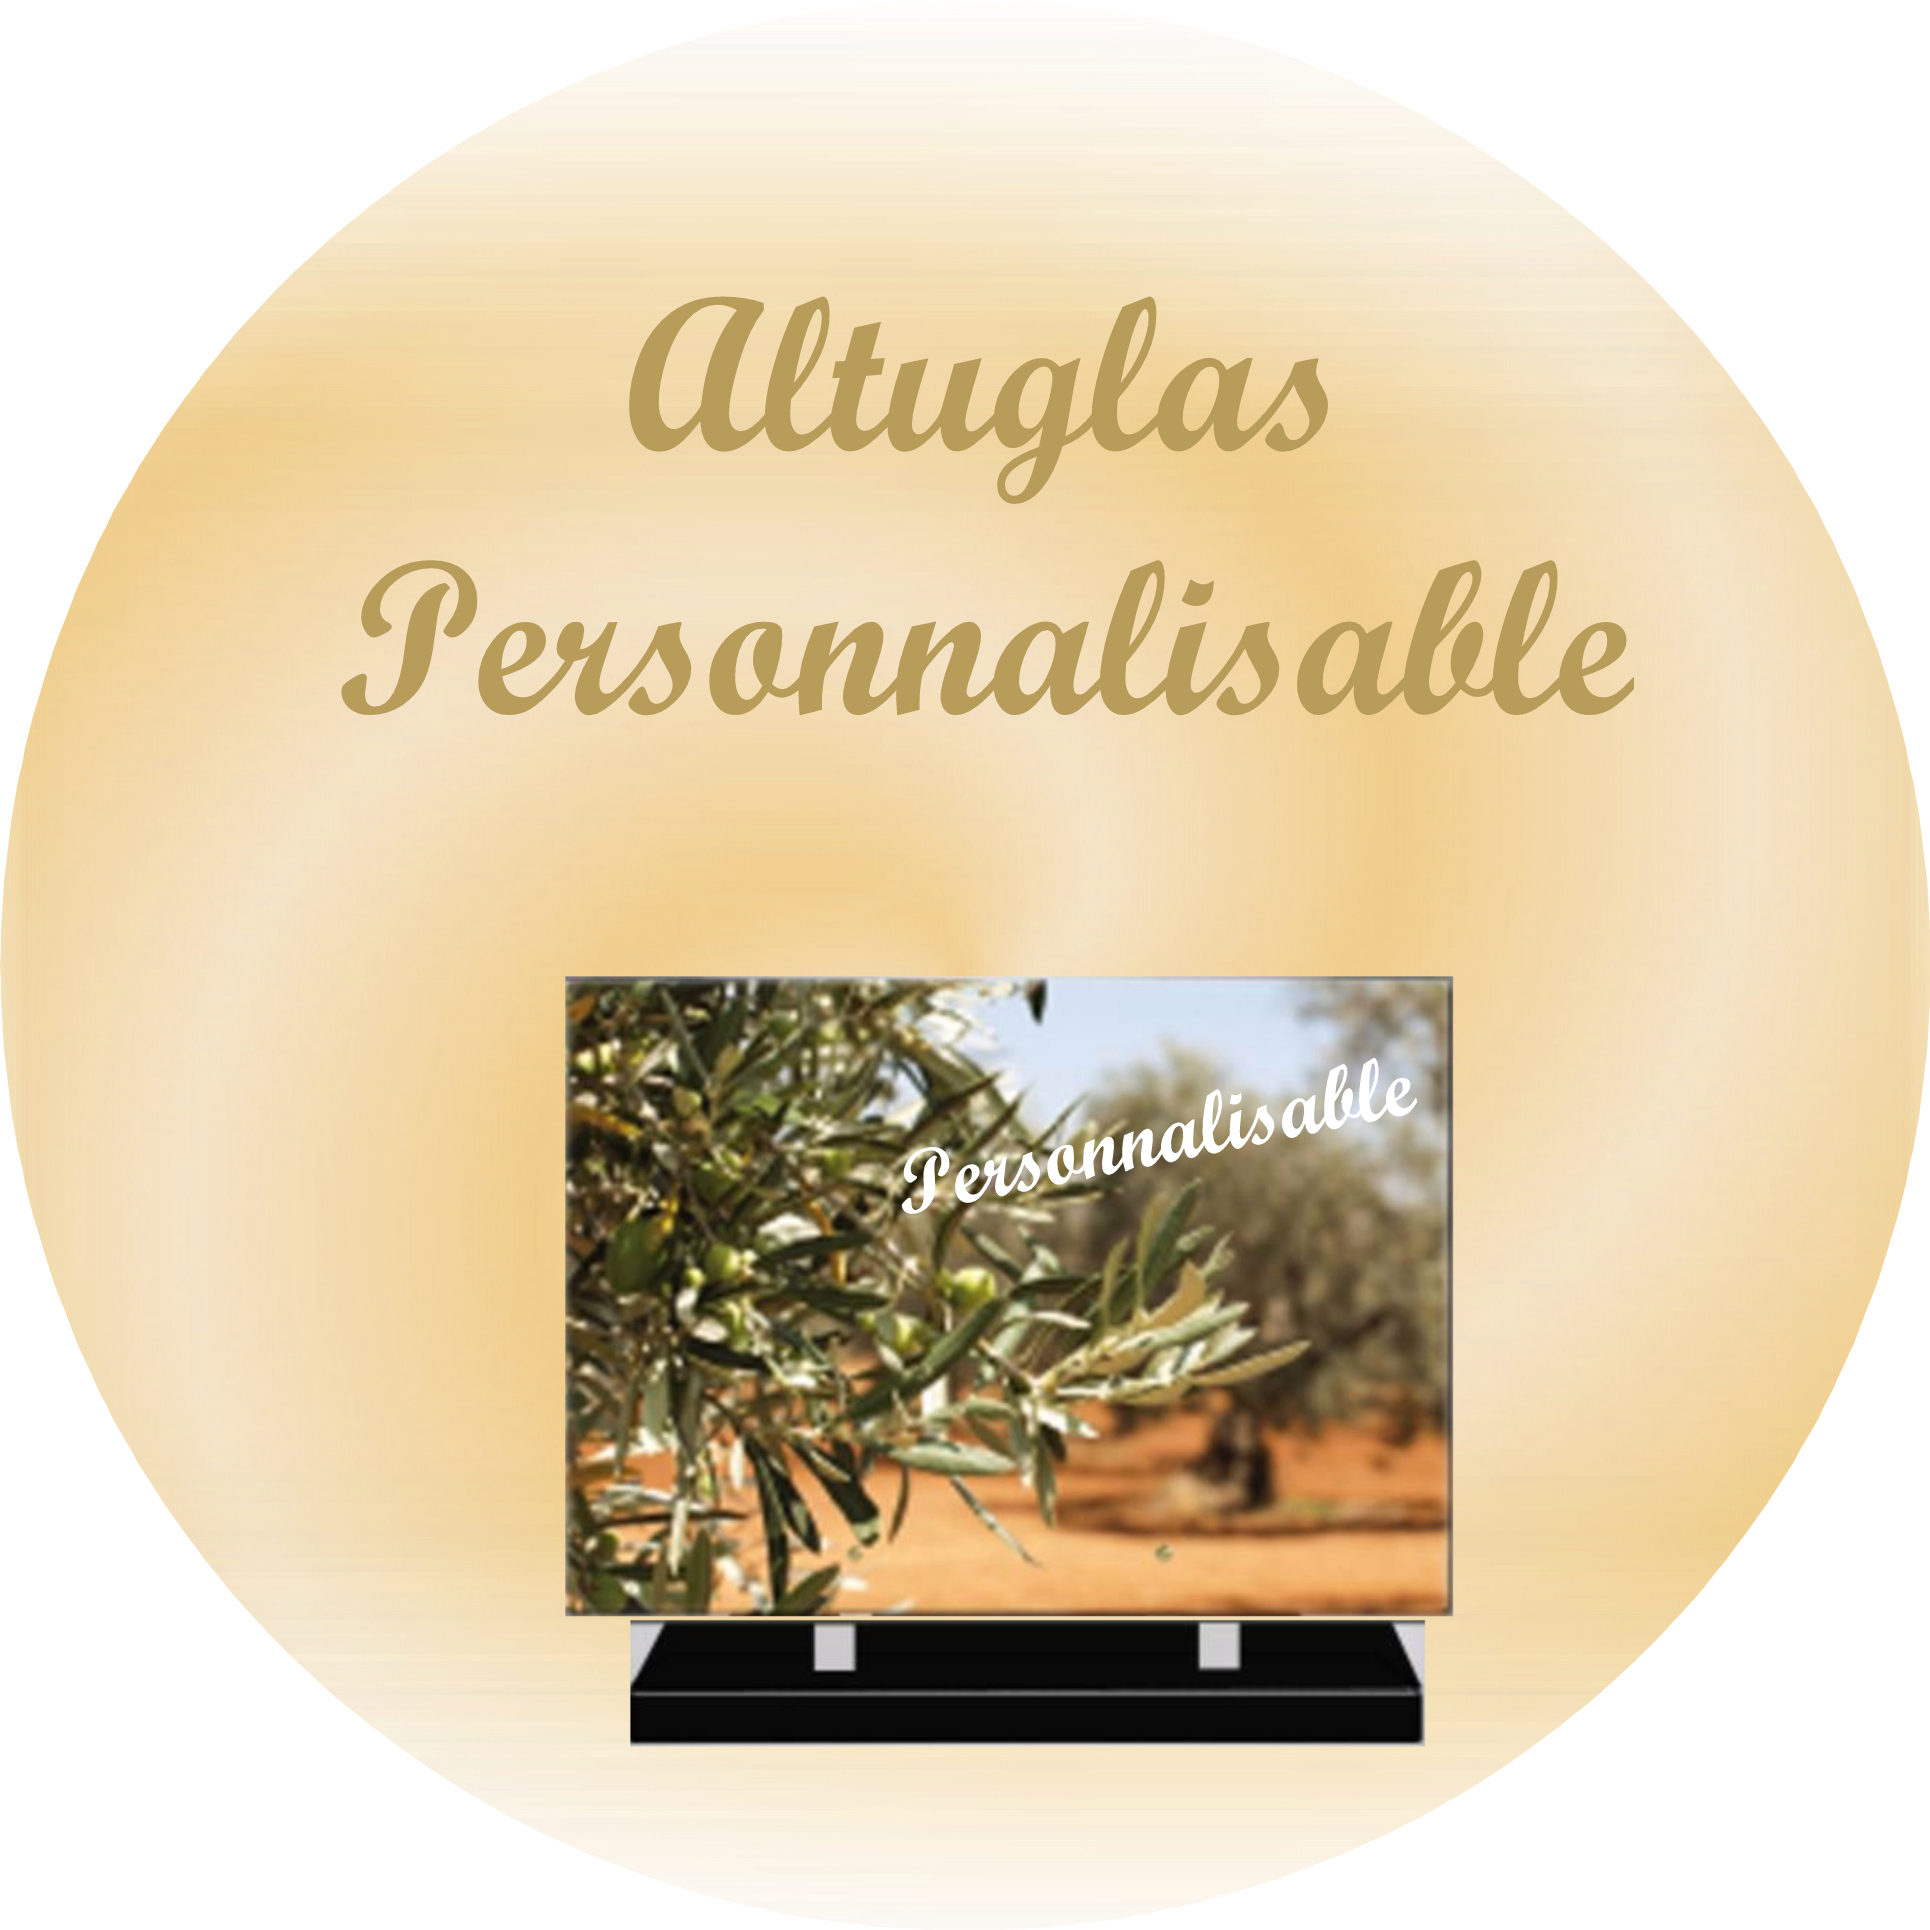 PLAQUES FUNERAIRES MODERNES PERSONNALISABLES RECTANGLE TANQUES